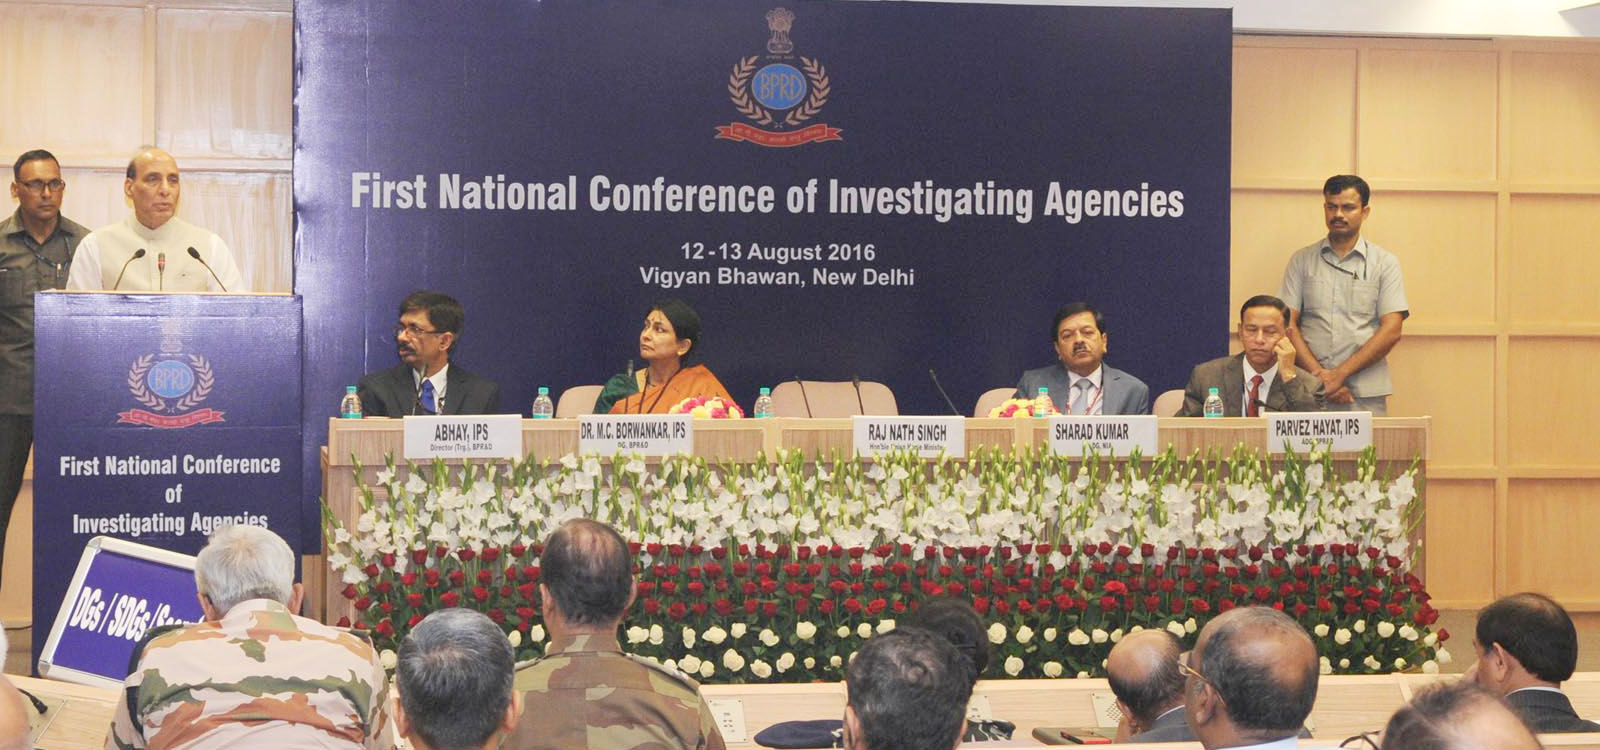 The Union Home Minister, Shri Rajnath Singh addressing the inaugural ceremony of the 1st National Conference of Investigating Agencies, in New Delhi on August 12, 2016. The DG, NIA, Shri Sharad Kumar, the DG, Bureau of Police Research and Development (BPR&D), Dr. M.C. Borwankar and other dignitaries are also seen.